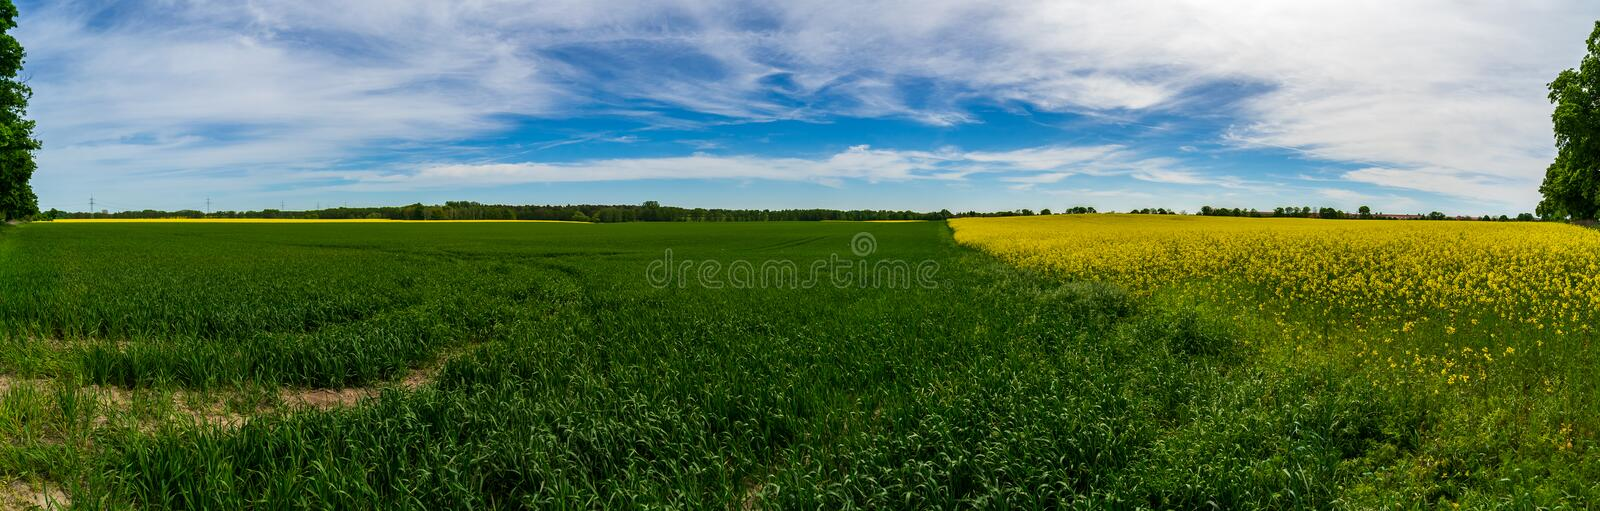 Panoramic view of the rapeseed field. royalty free stock images